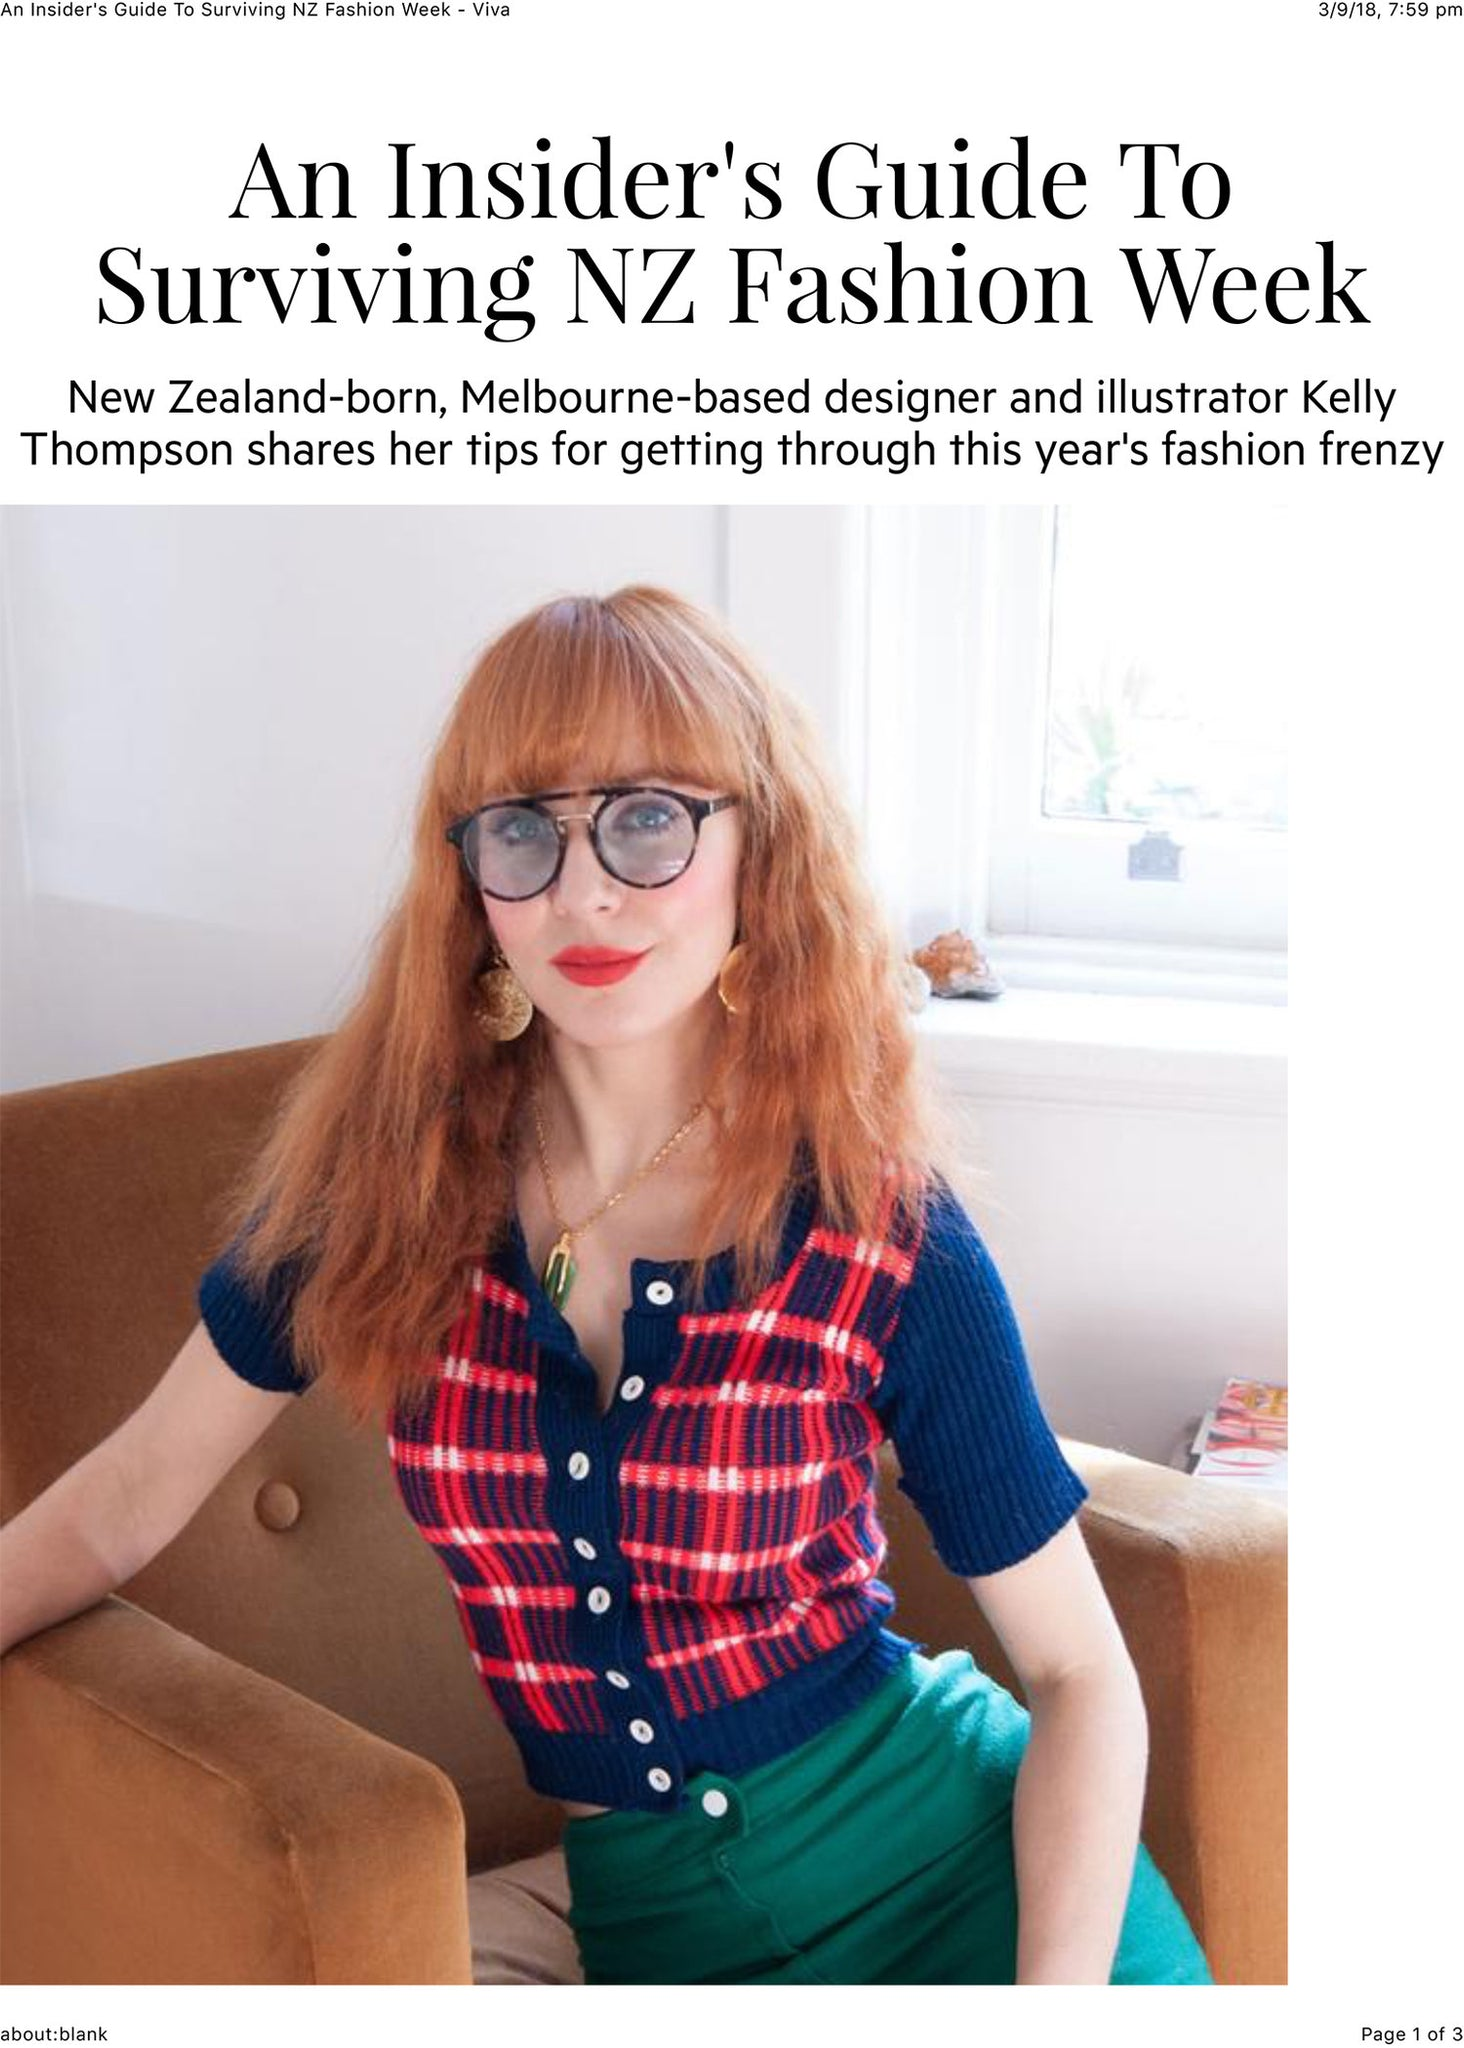 Melbourne Illustrator Kelly Thompson talks to Viva Magazine about surviving New Zealand Fashion Week